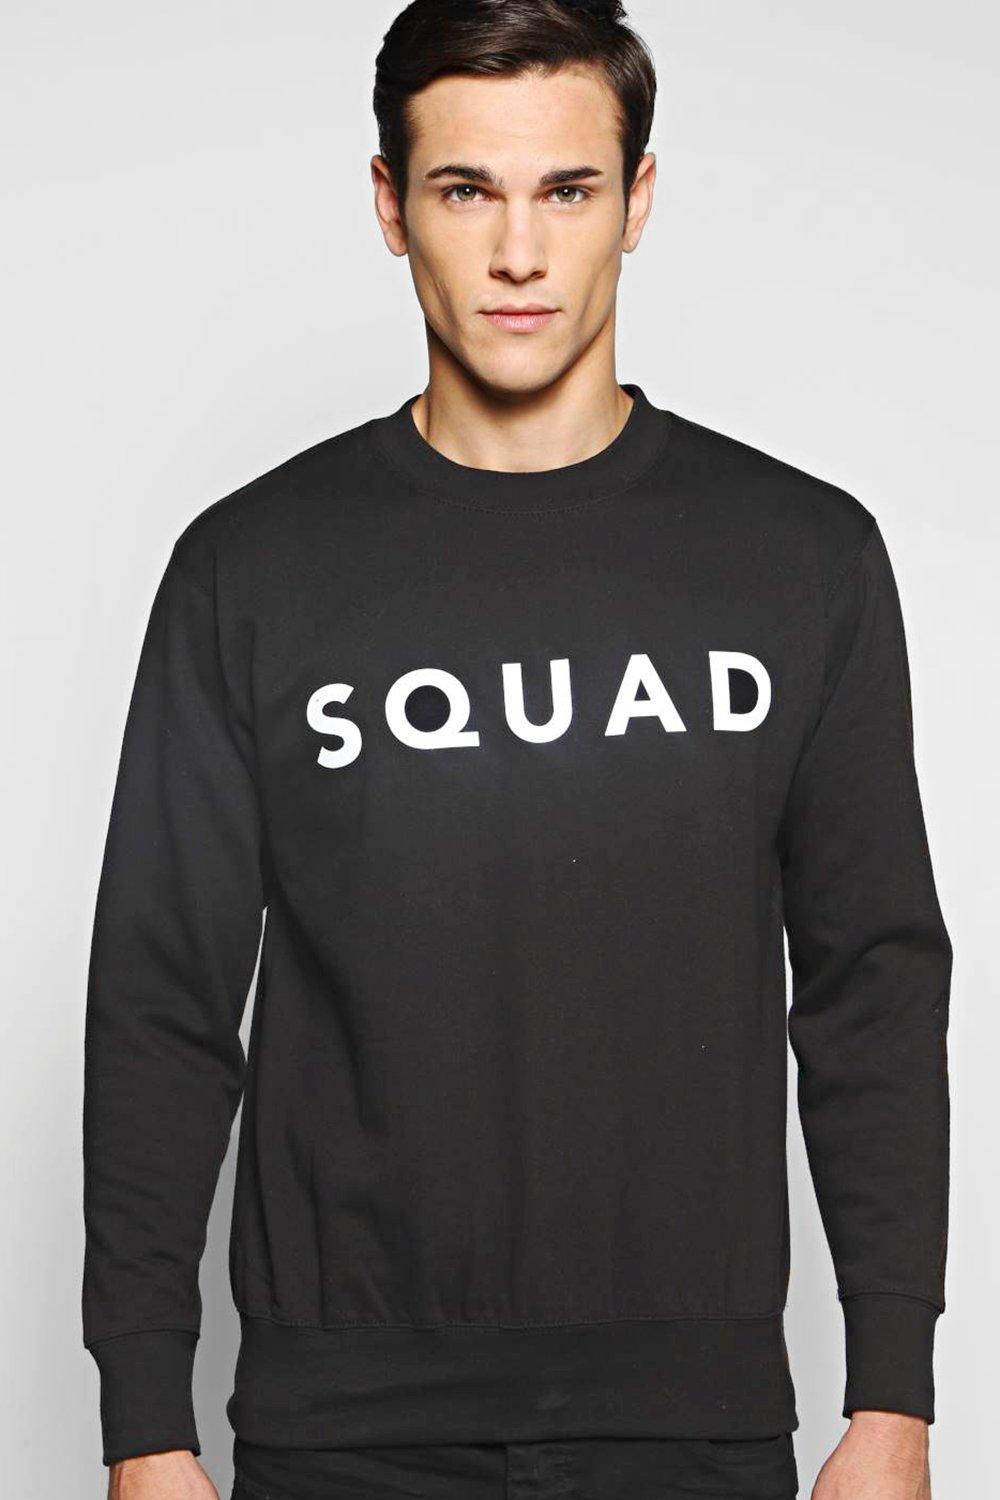 Squad Slogan Sweater